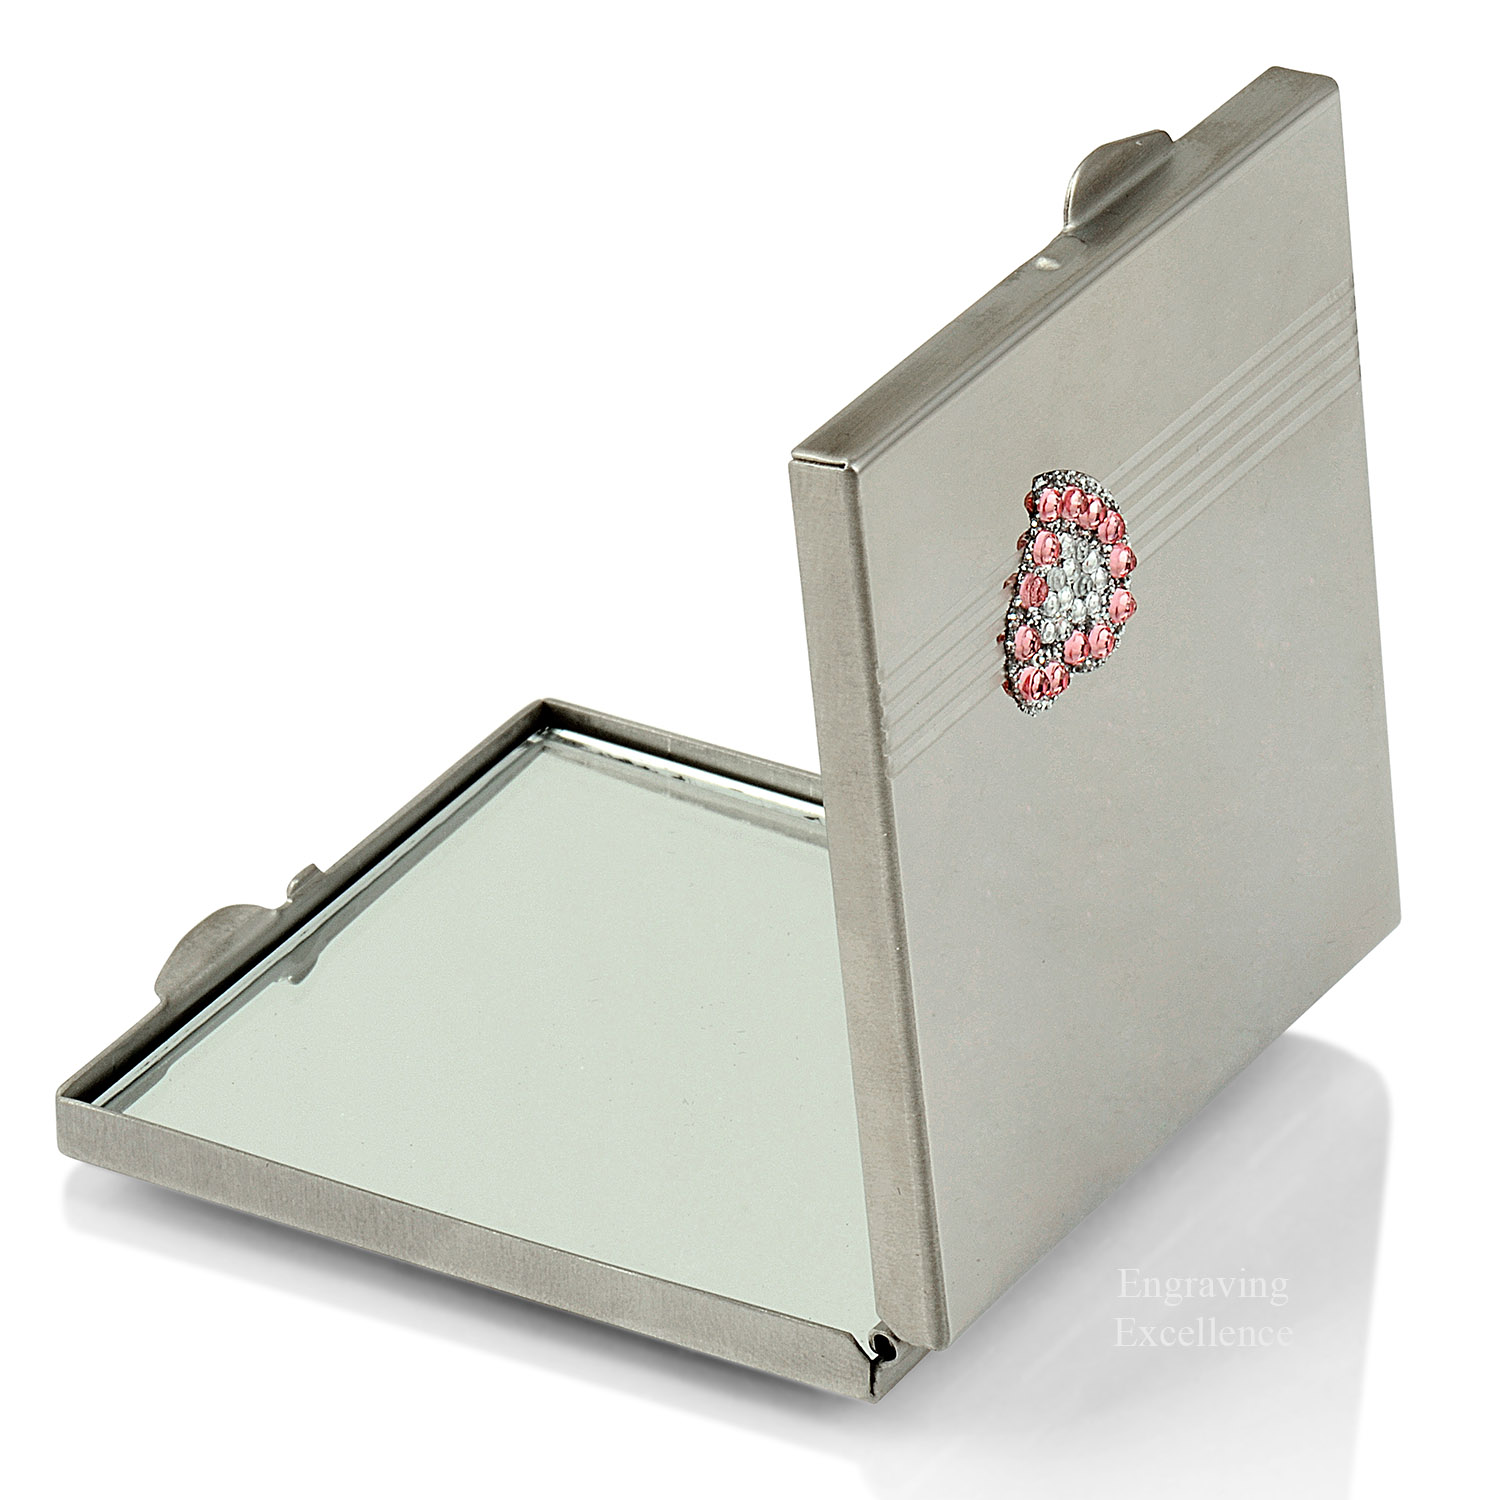 Heart Design, Jewelled Square Compact